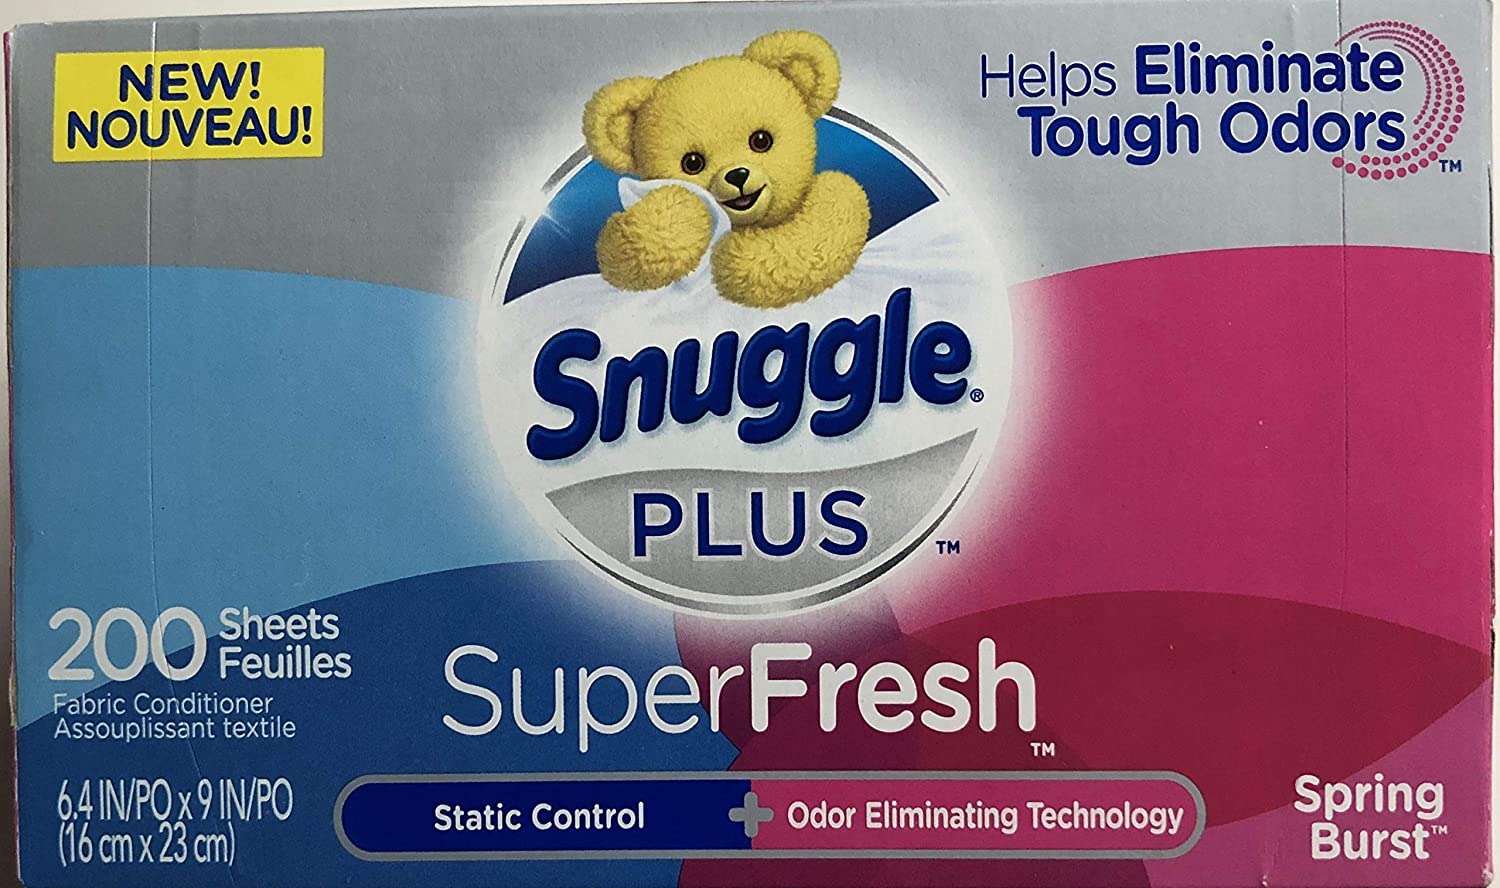 Snuggle Plus SuperFresh Fabric Softener Dryer Sheets with Static Control and Odor Eliminating Technology, Spring Burst, 200 Count